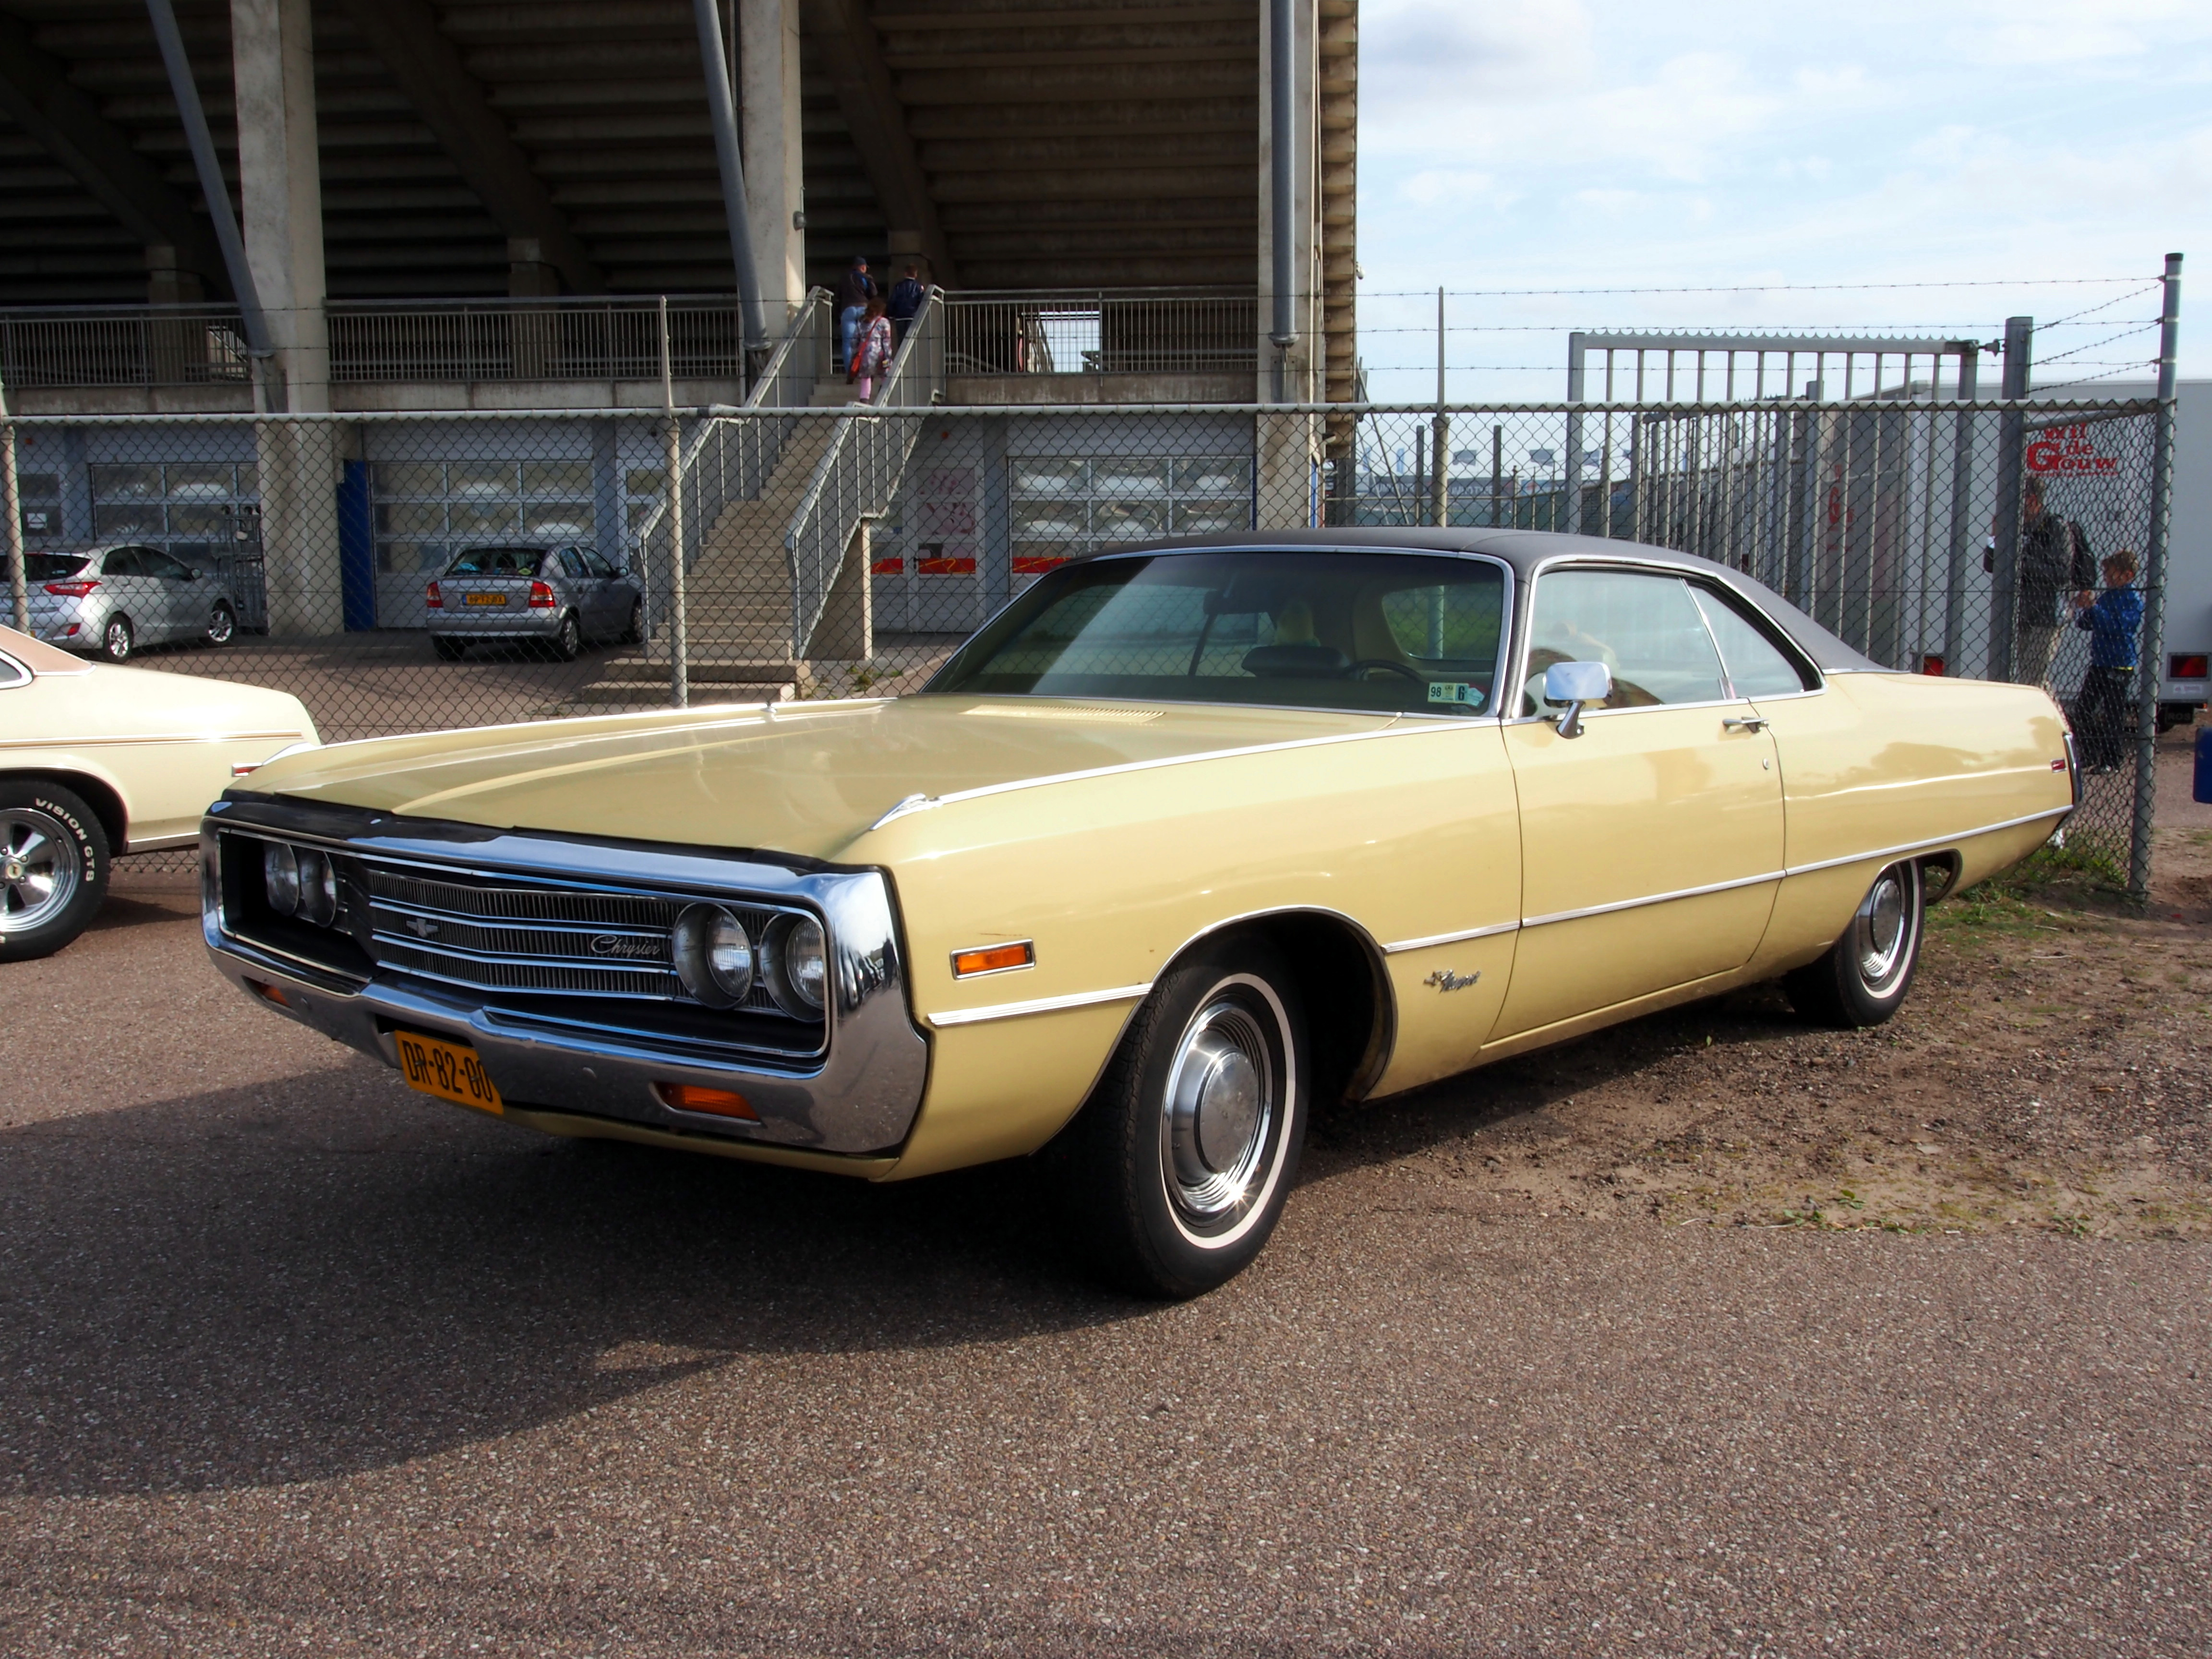 1971 Chrysler Newport #1